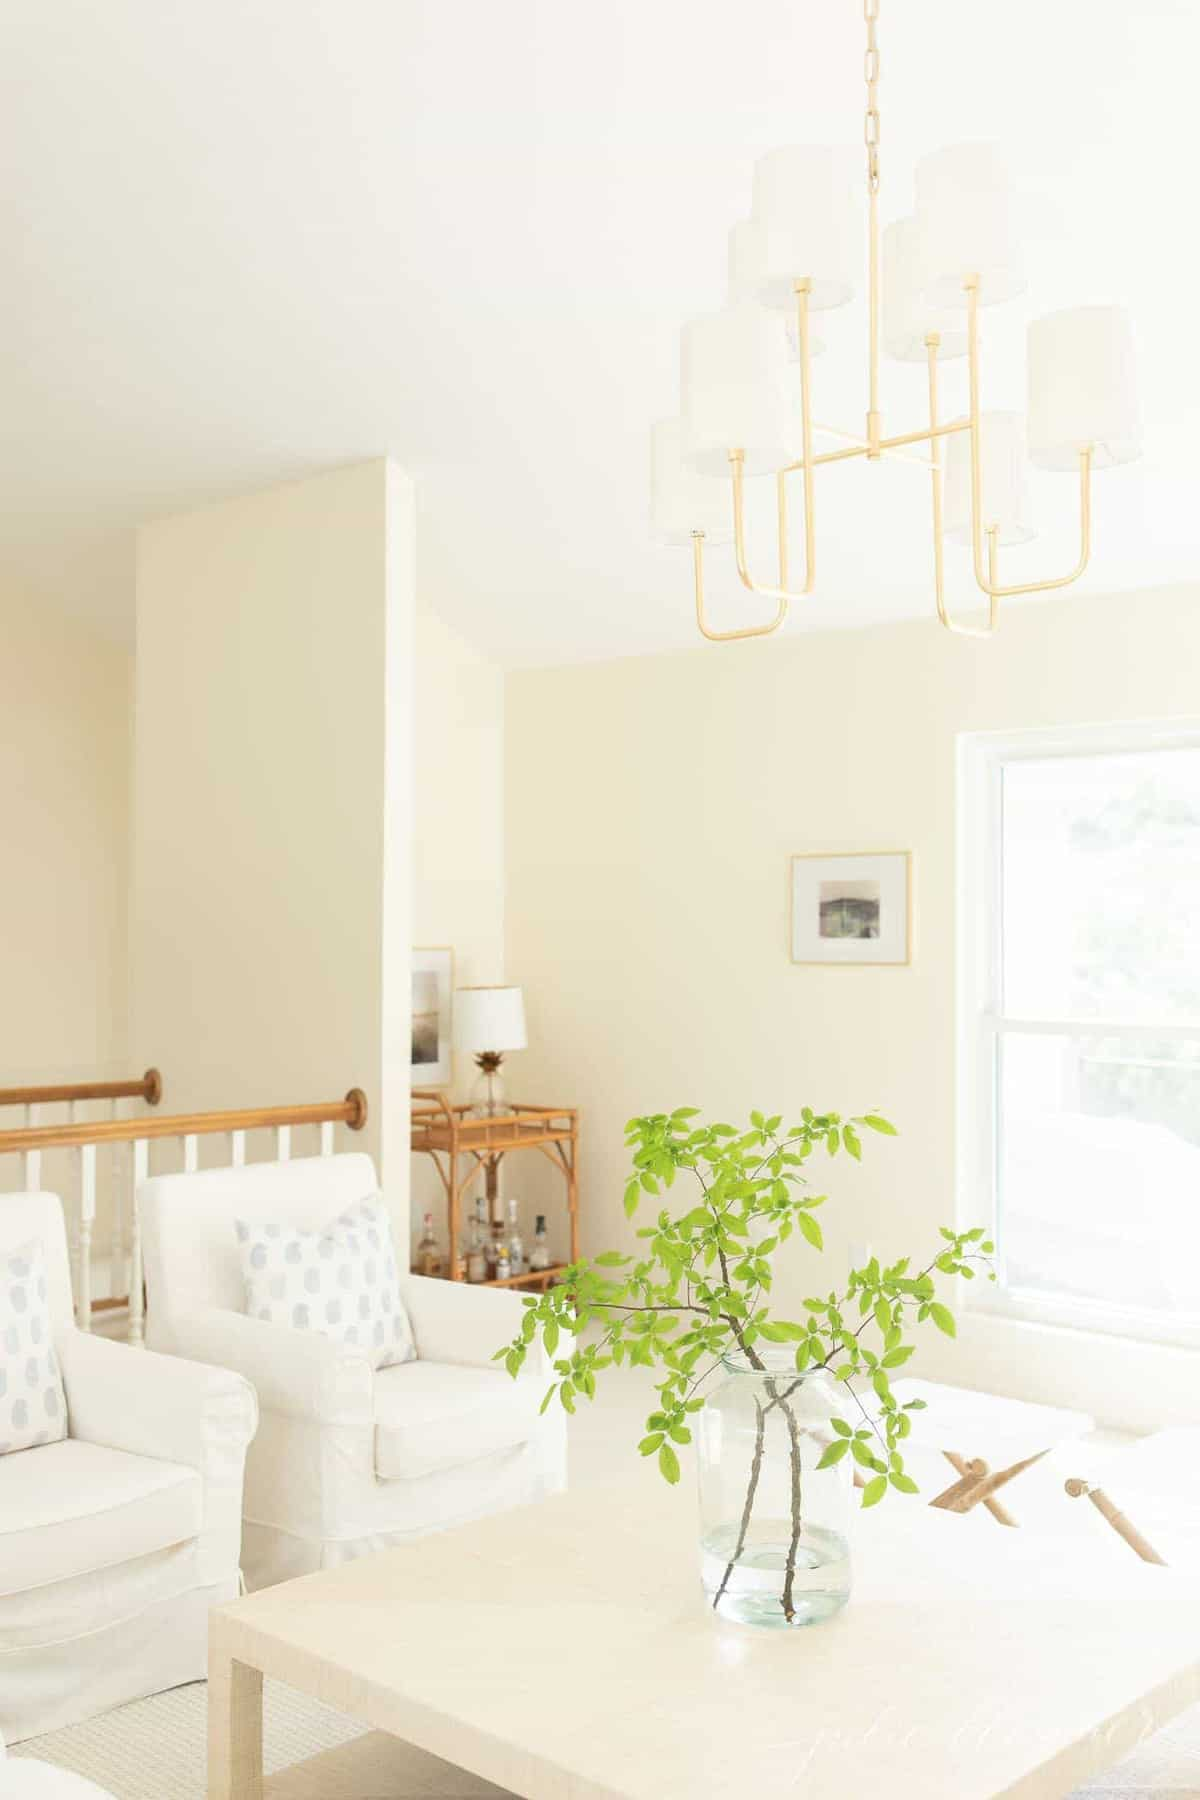 modern living room with cream walls, white ceiling and light colored furnishings.